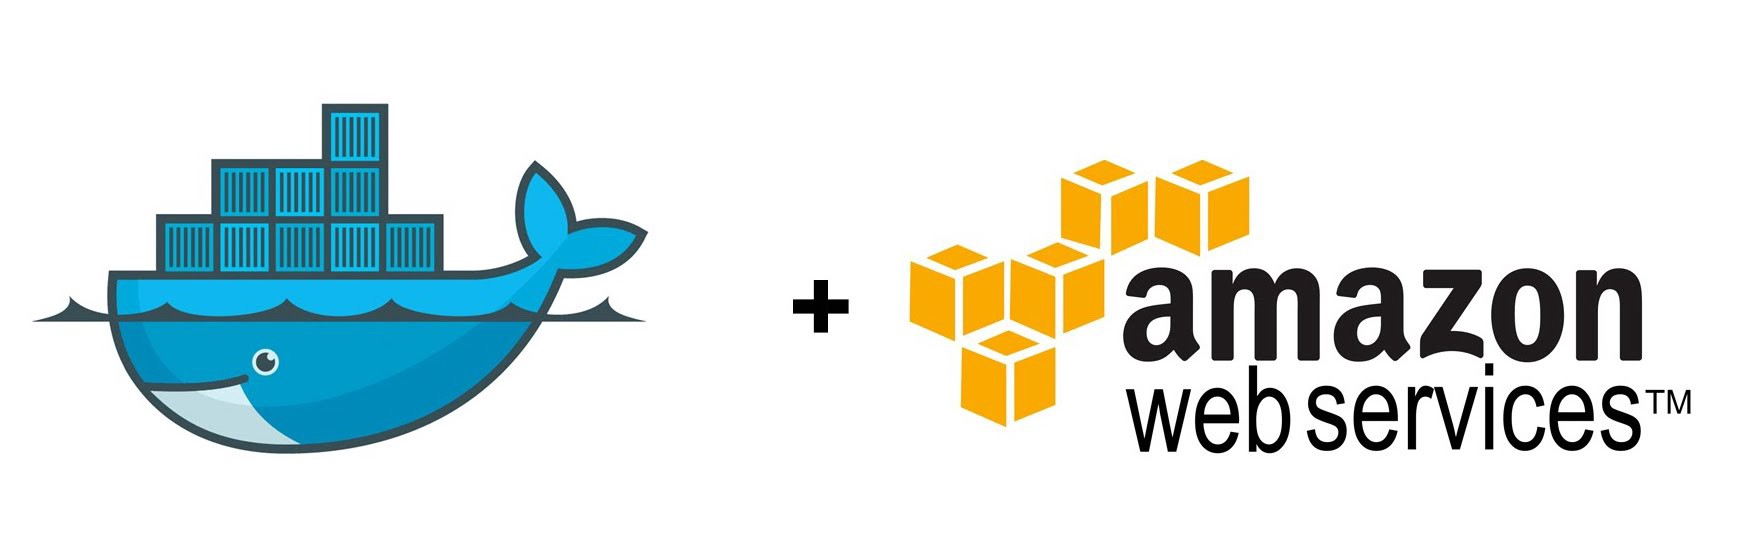 Deploying Containers on Amazon's ECS using Fargate and